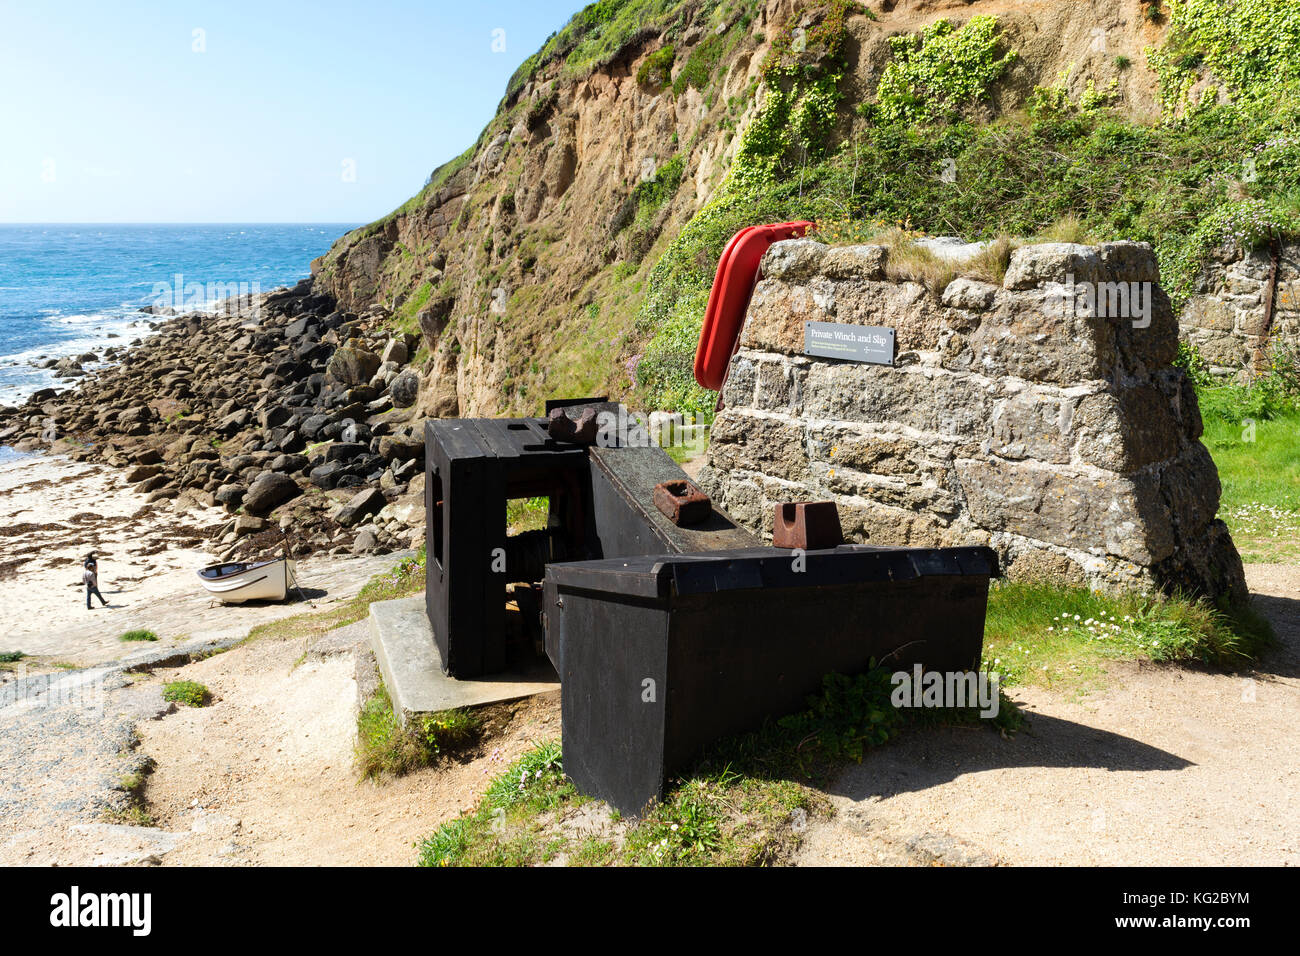 the boat winch on the slipway at porthgwarra cove in cornwall, england, uk. - Stock Image